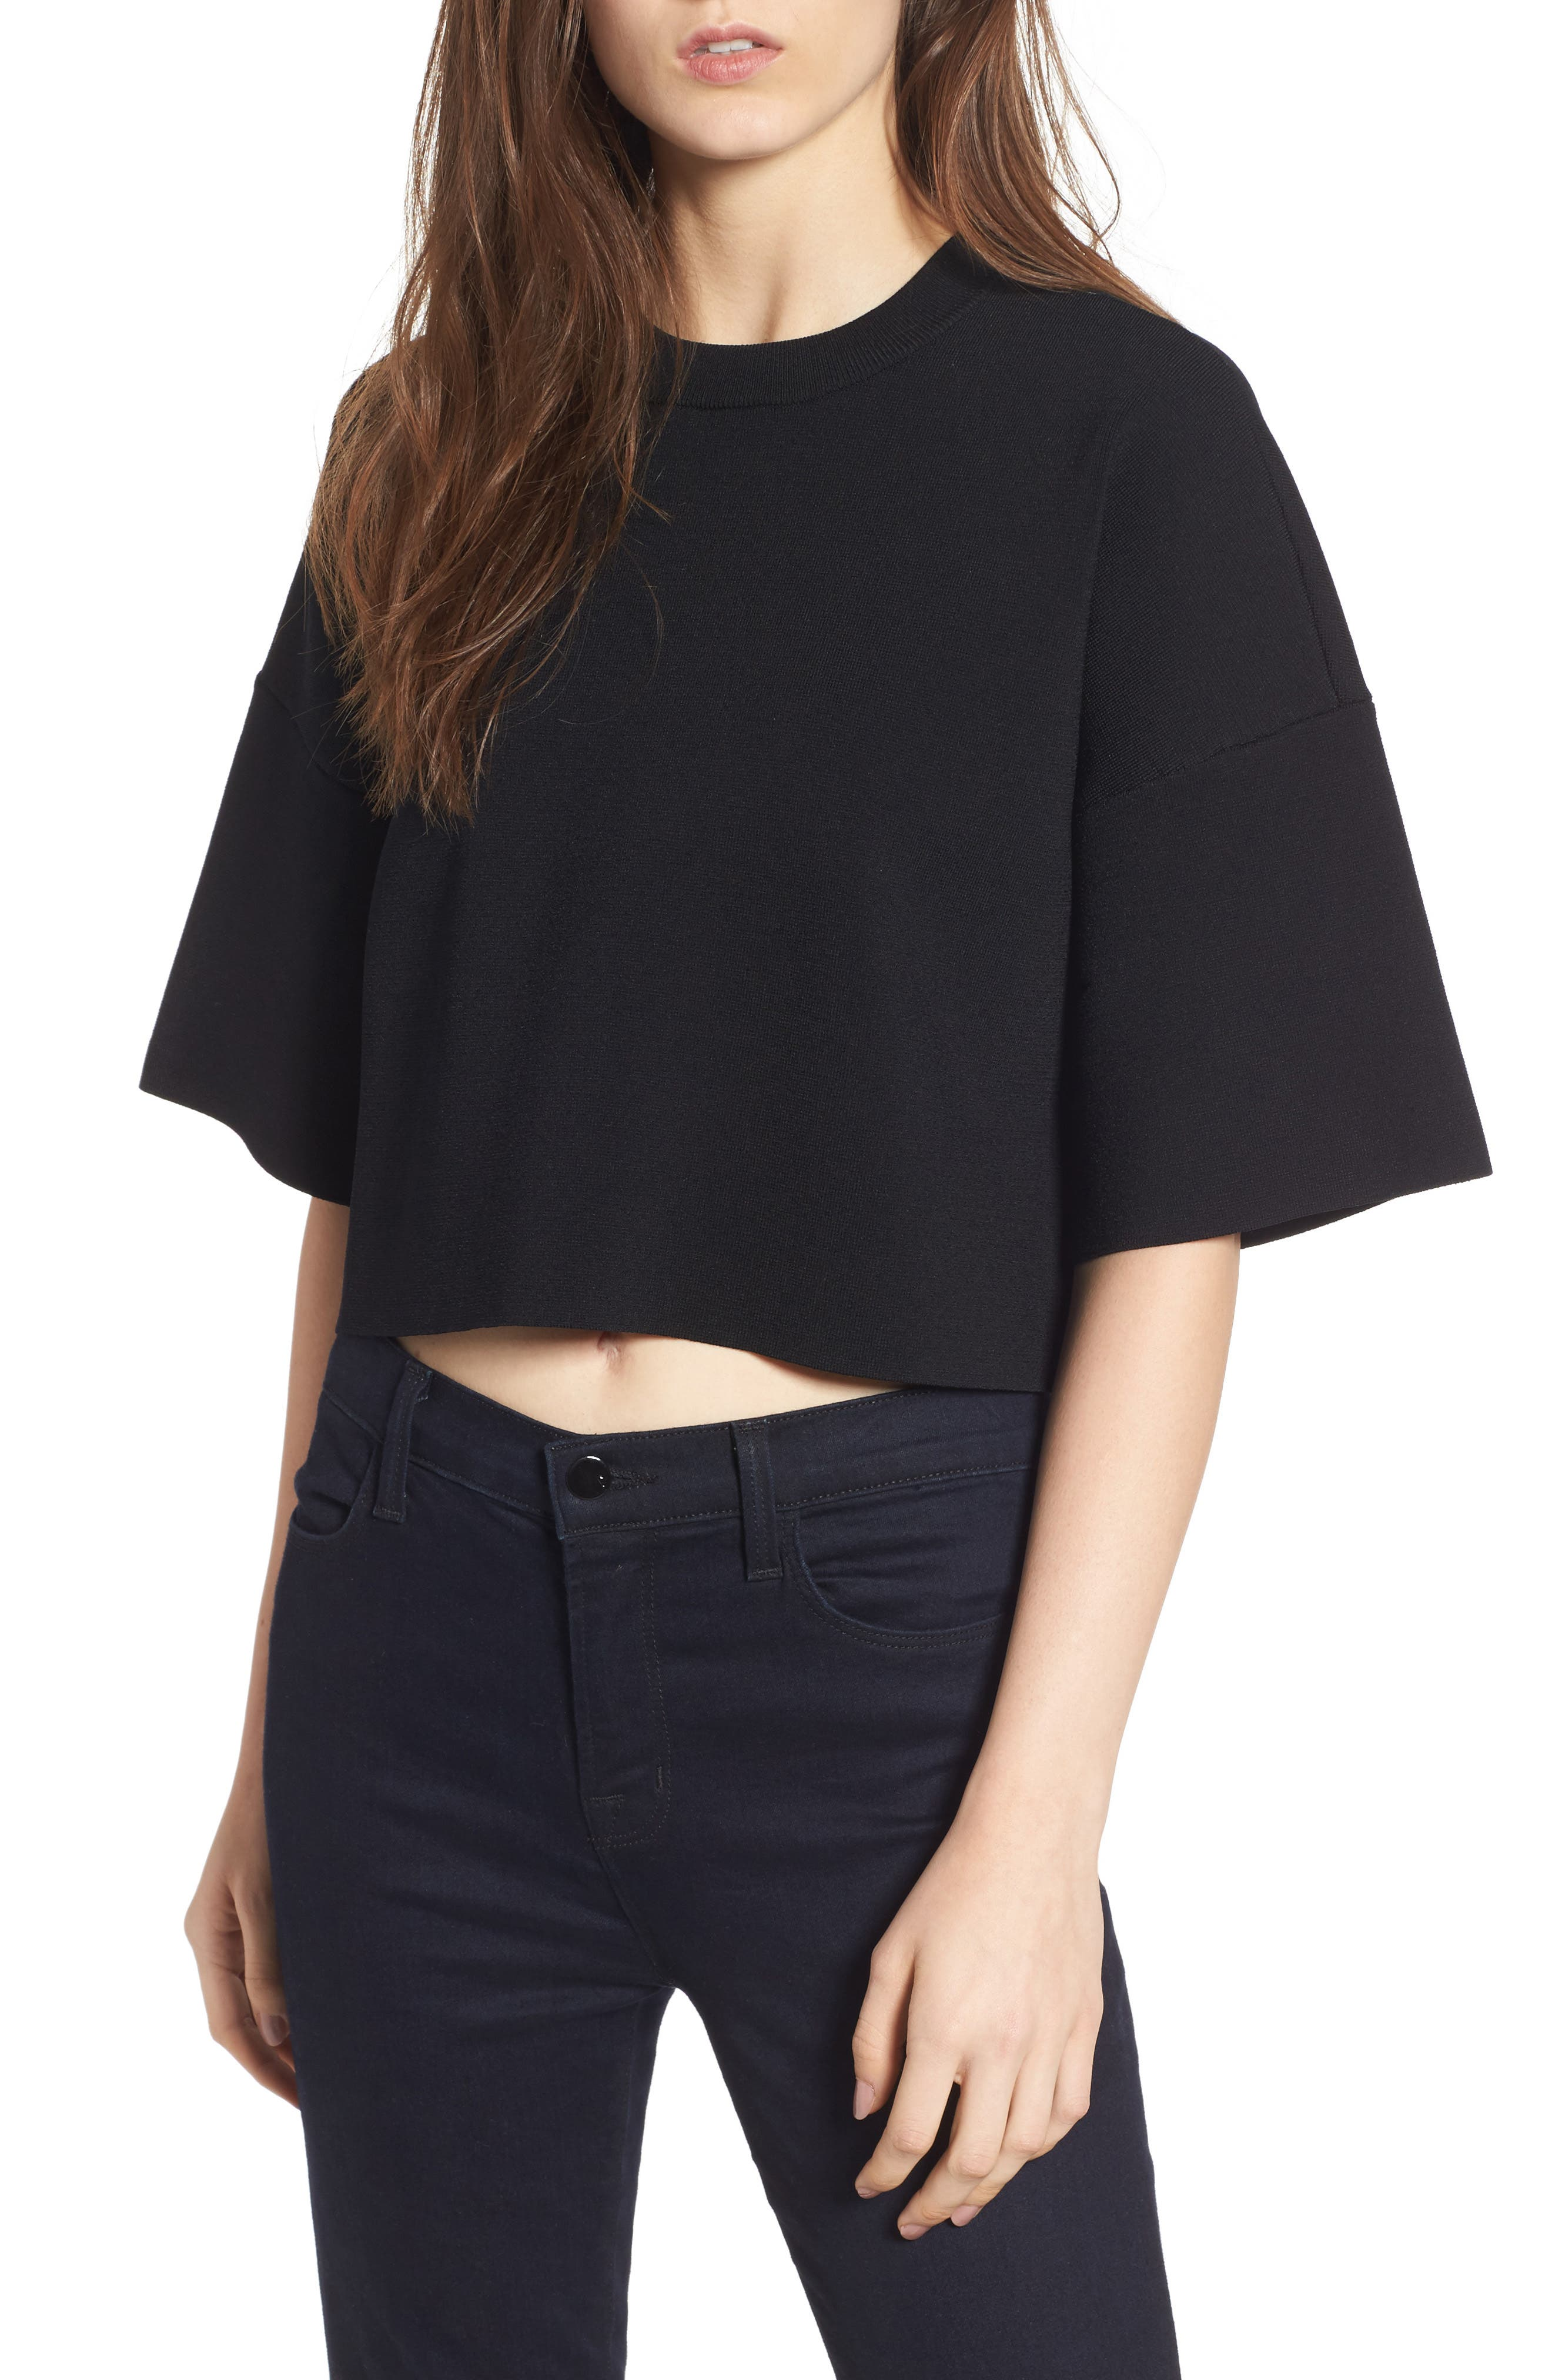 Main Image - KENDALL + KYLIE Lace-Up Back Top